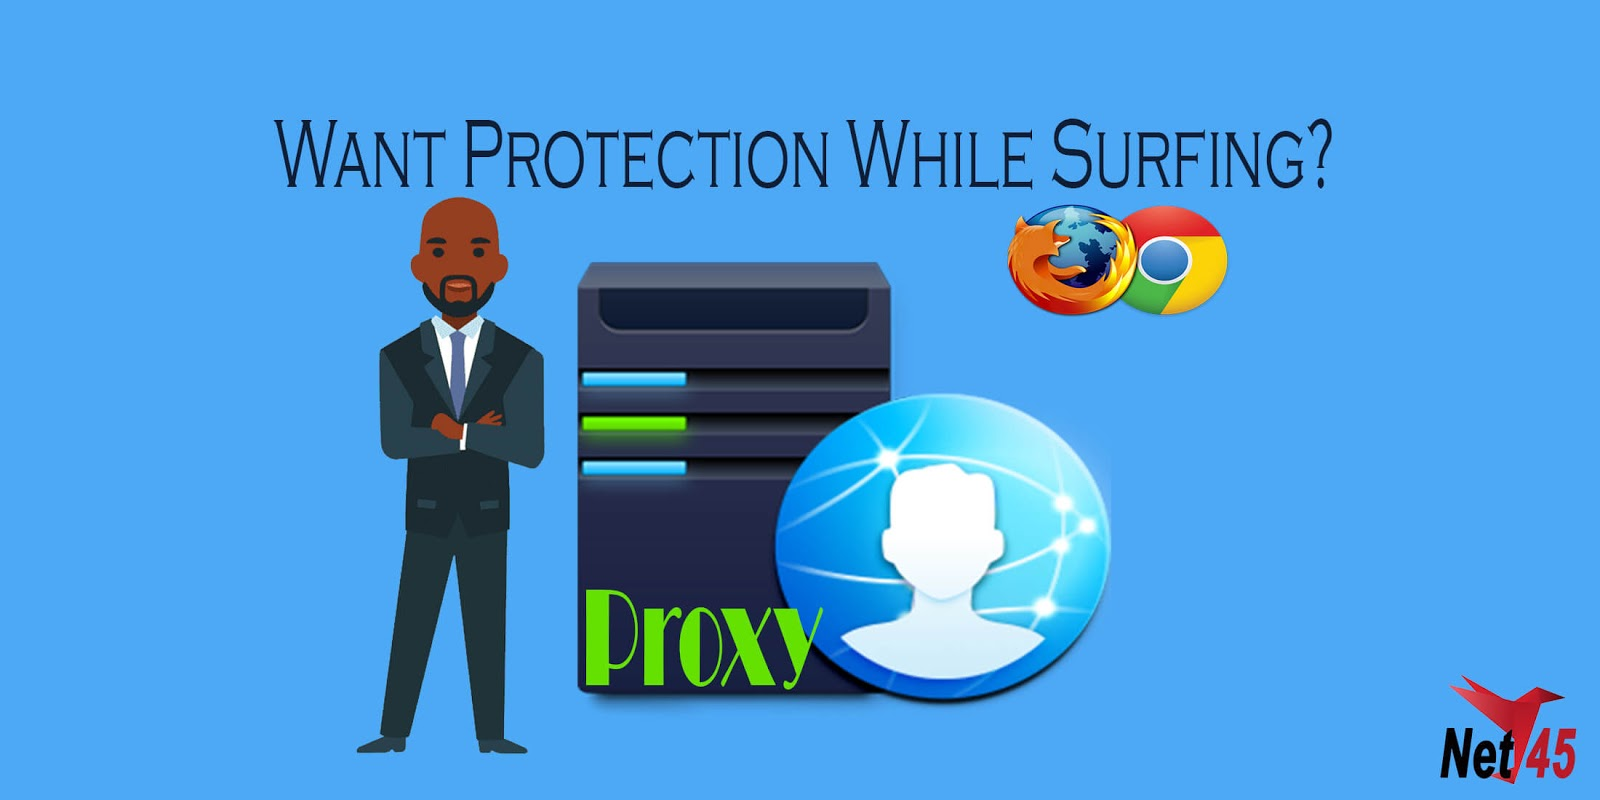 protection,proxy,data protection funny video,data protection funny,data protection for dummies,data protection for students,data protection gdpr,data protection commercial,data protection and privacy,data protection breach,error while surfing,data protection day,hide yourself while surfing internet,data protection awareness video,i can't connect to the internet,anonymous,security,anonymous proxy,tor,anonymous browsing